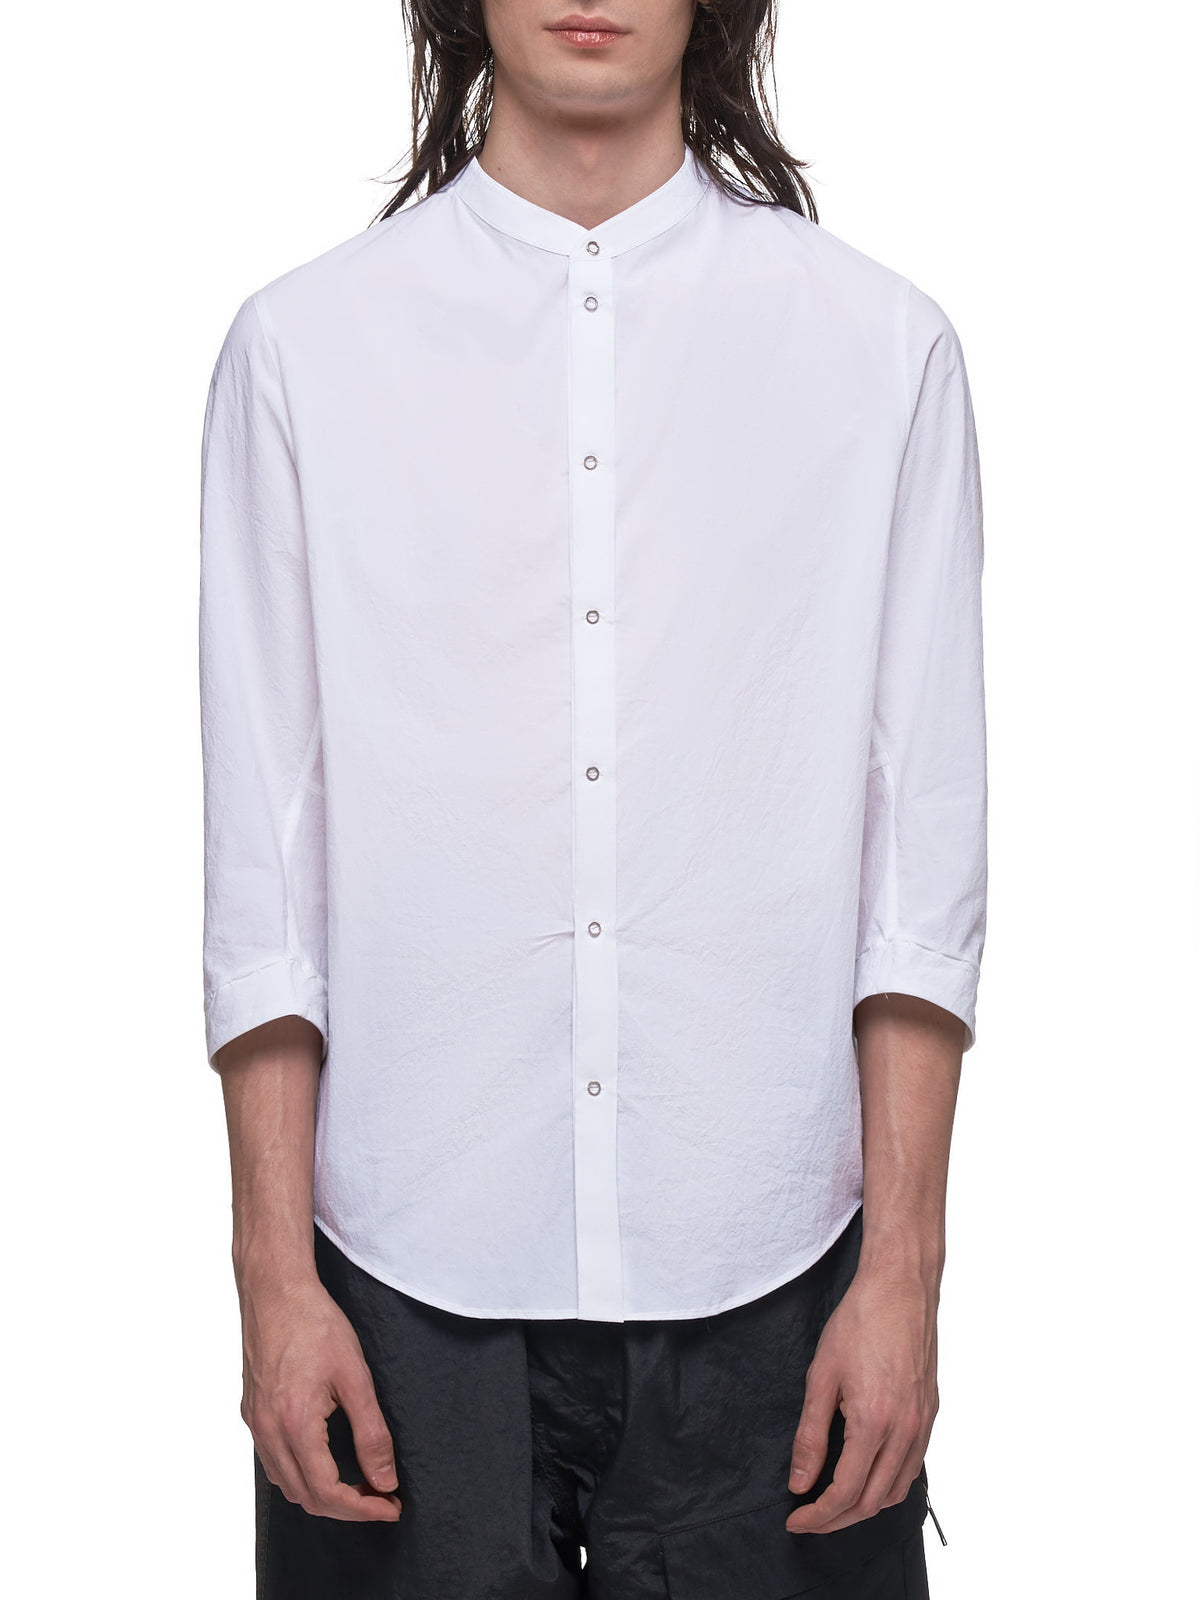 Stand Collar Shirt (STAND-COLLAR-SHIRT-M-S-WHIT)